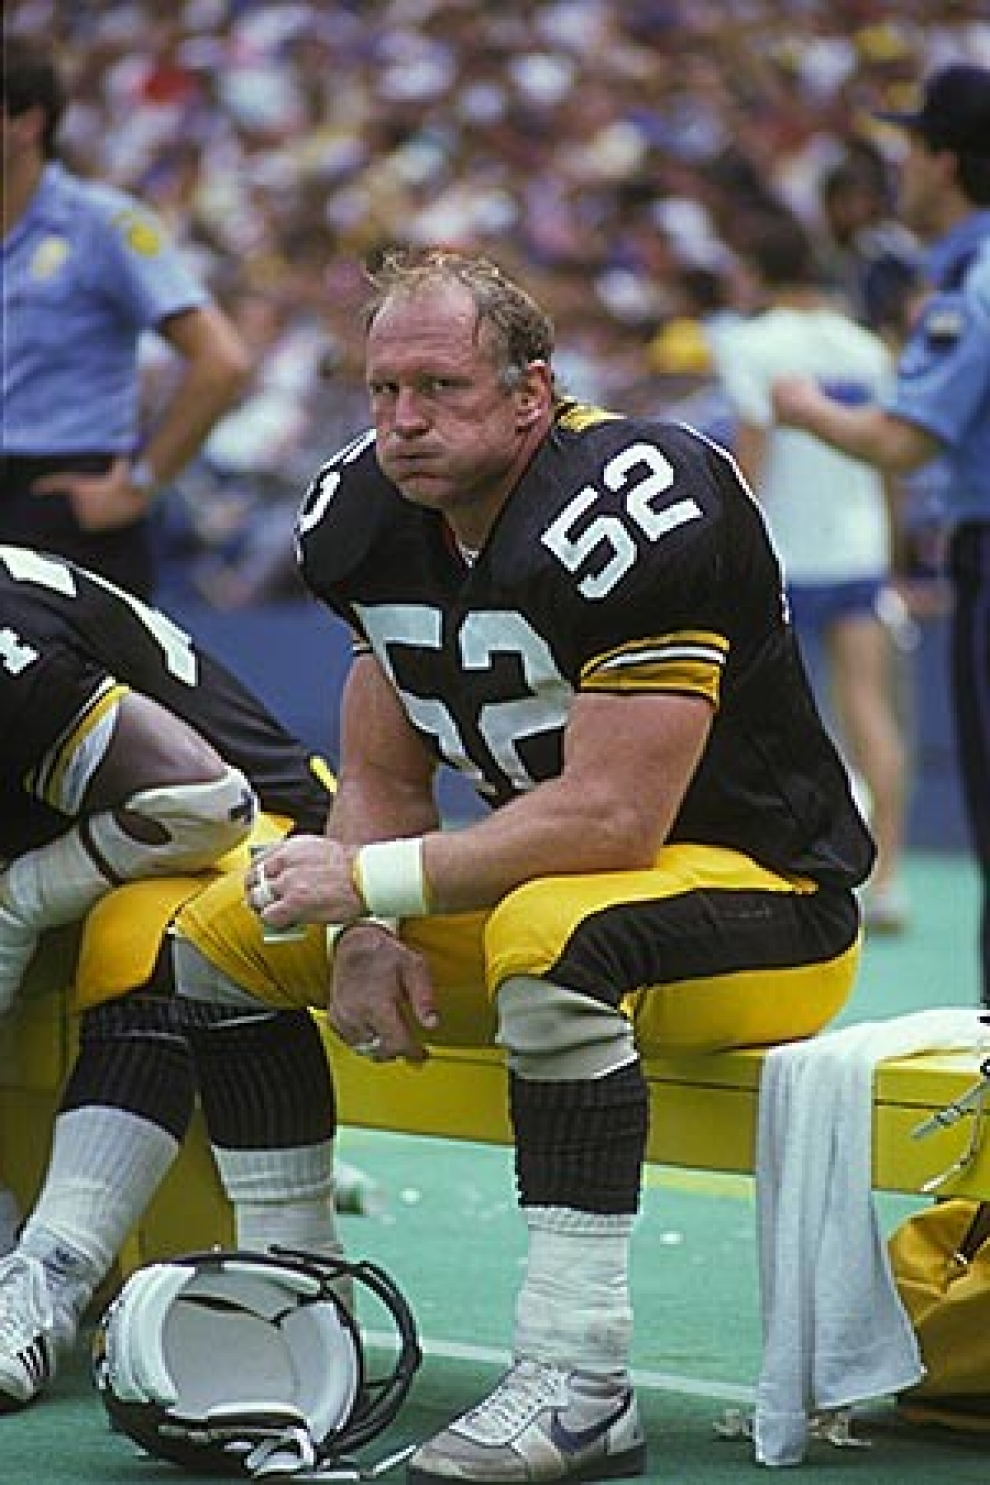 nfl s plight on brain injuries not over al jazeera america former pittsburgh steeler mike webster who died in 2002 at age 50